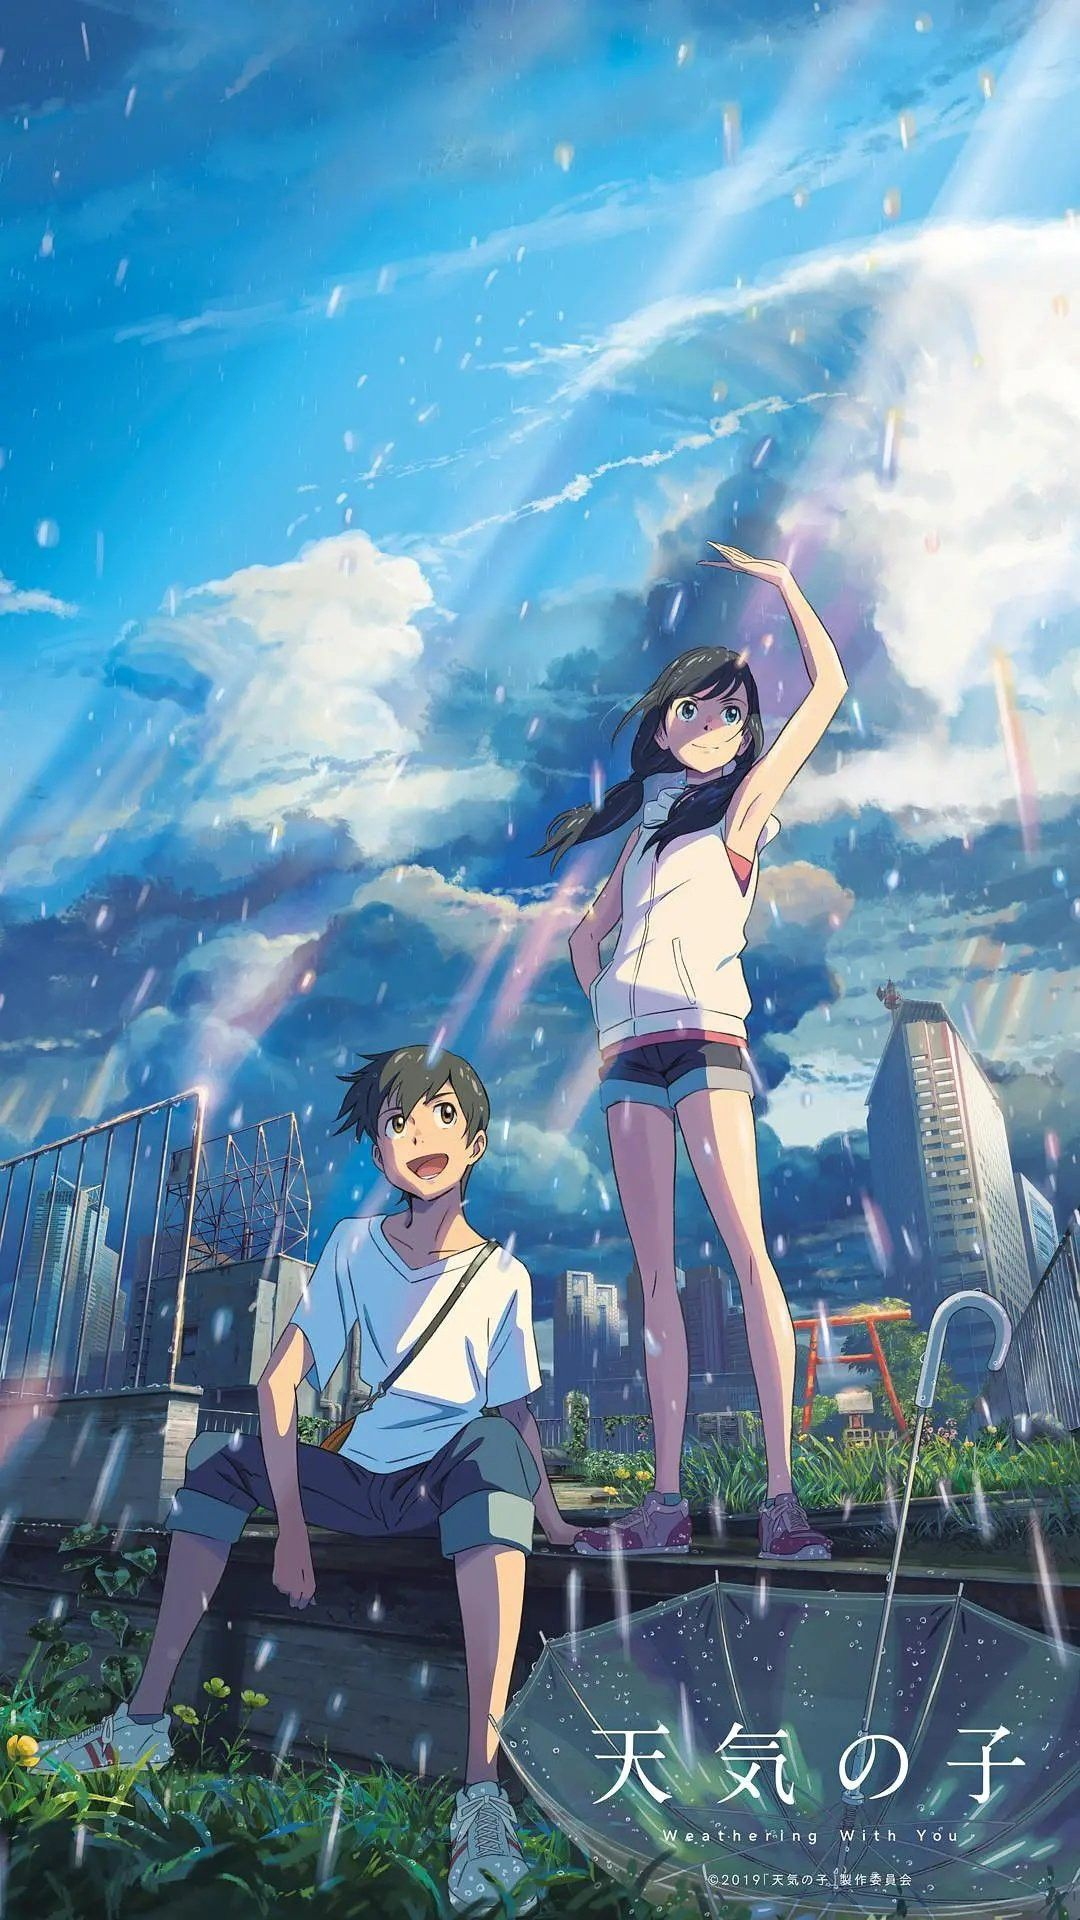 Pin by Noorin Ansari on Your name in 2020 Anime films